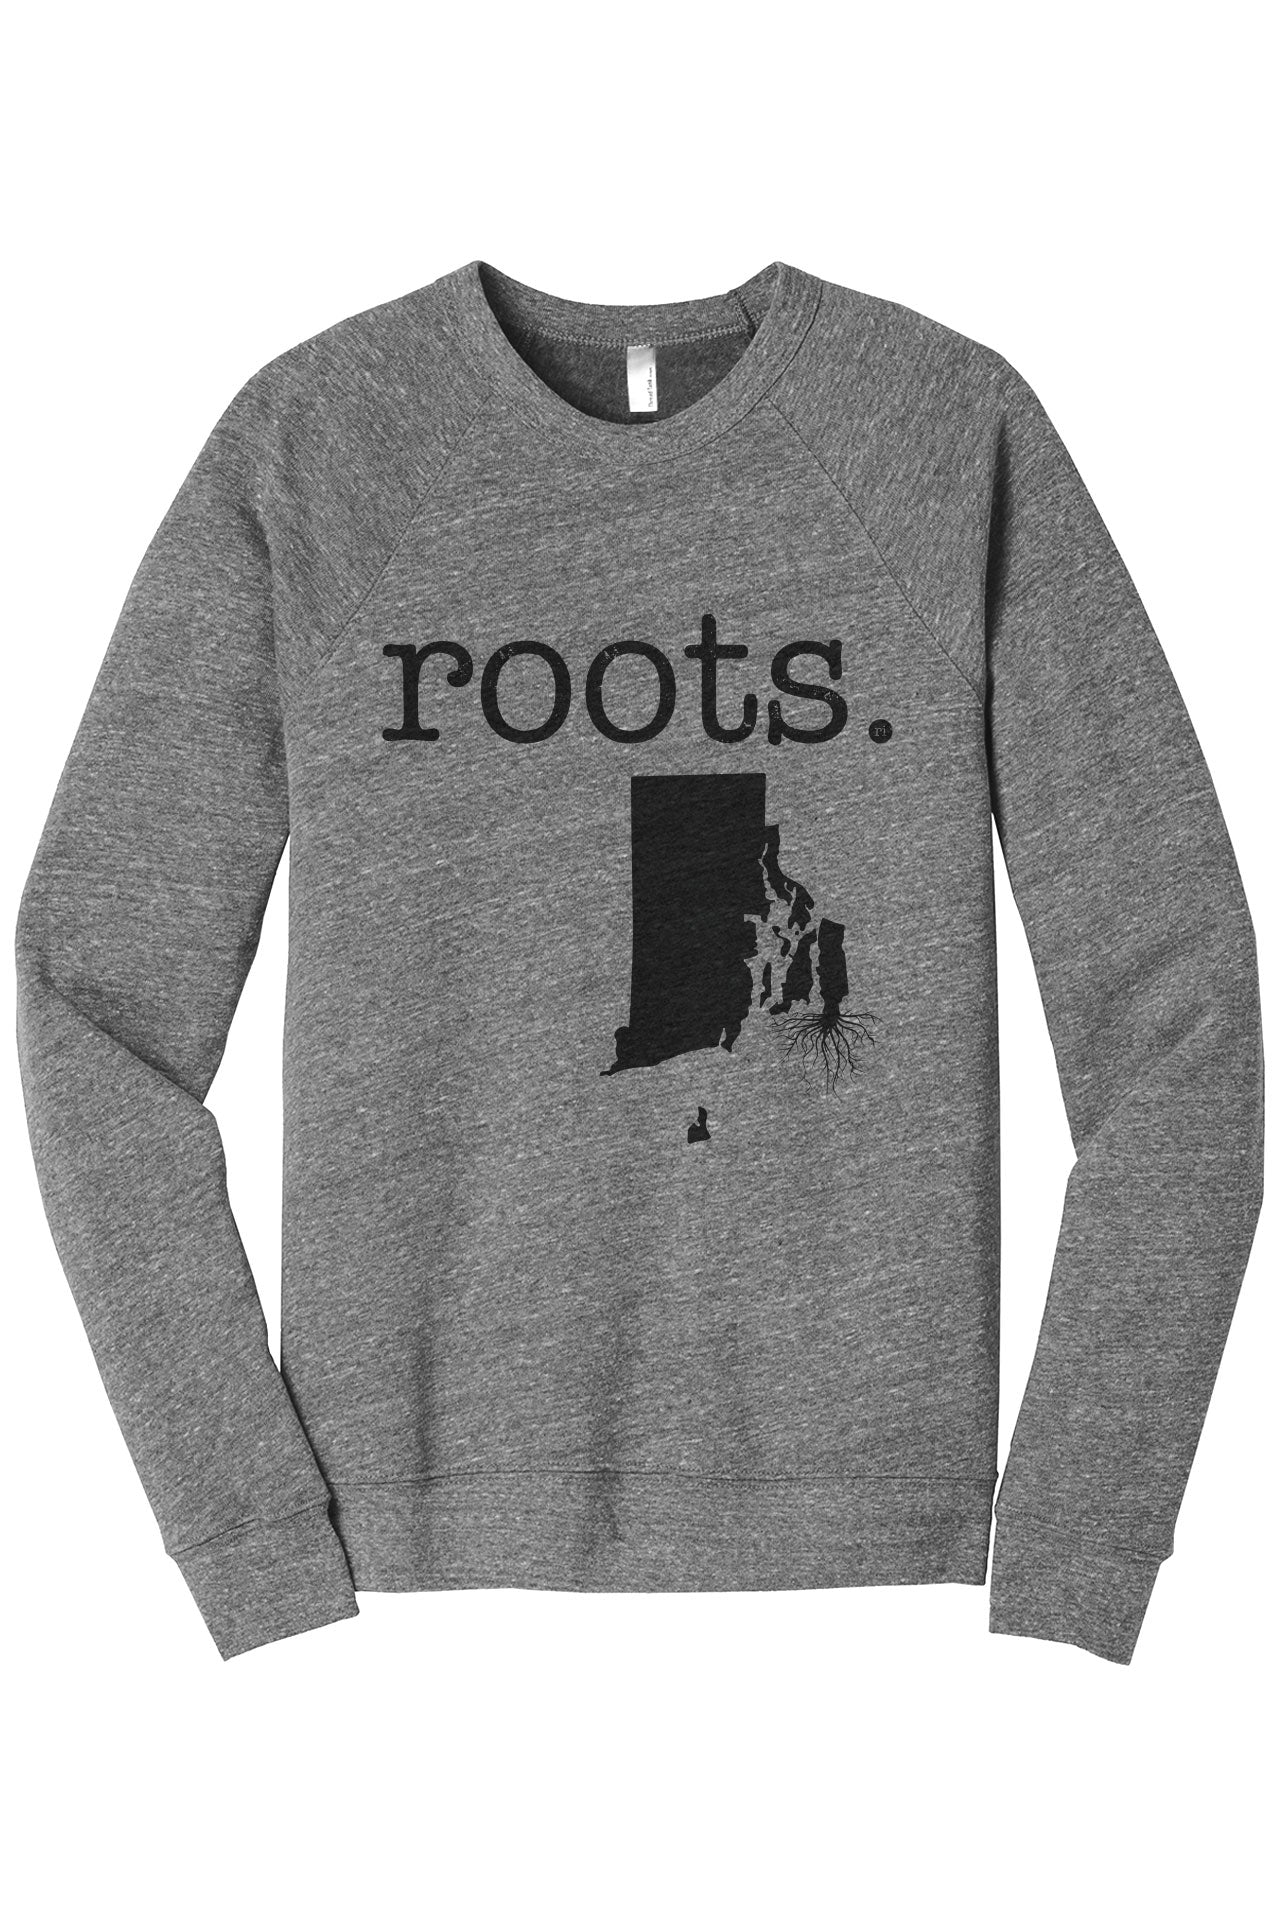 Home Roots State Rhode Island RI Cozy Unisex Fleece Longsleeves Sweater Heather Grey FRONT